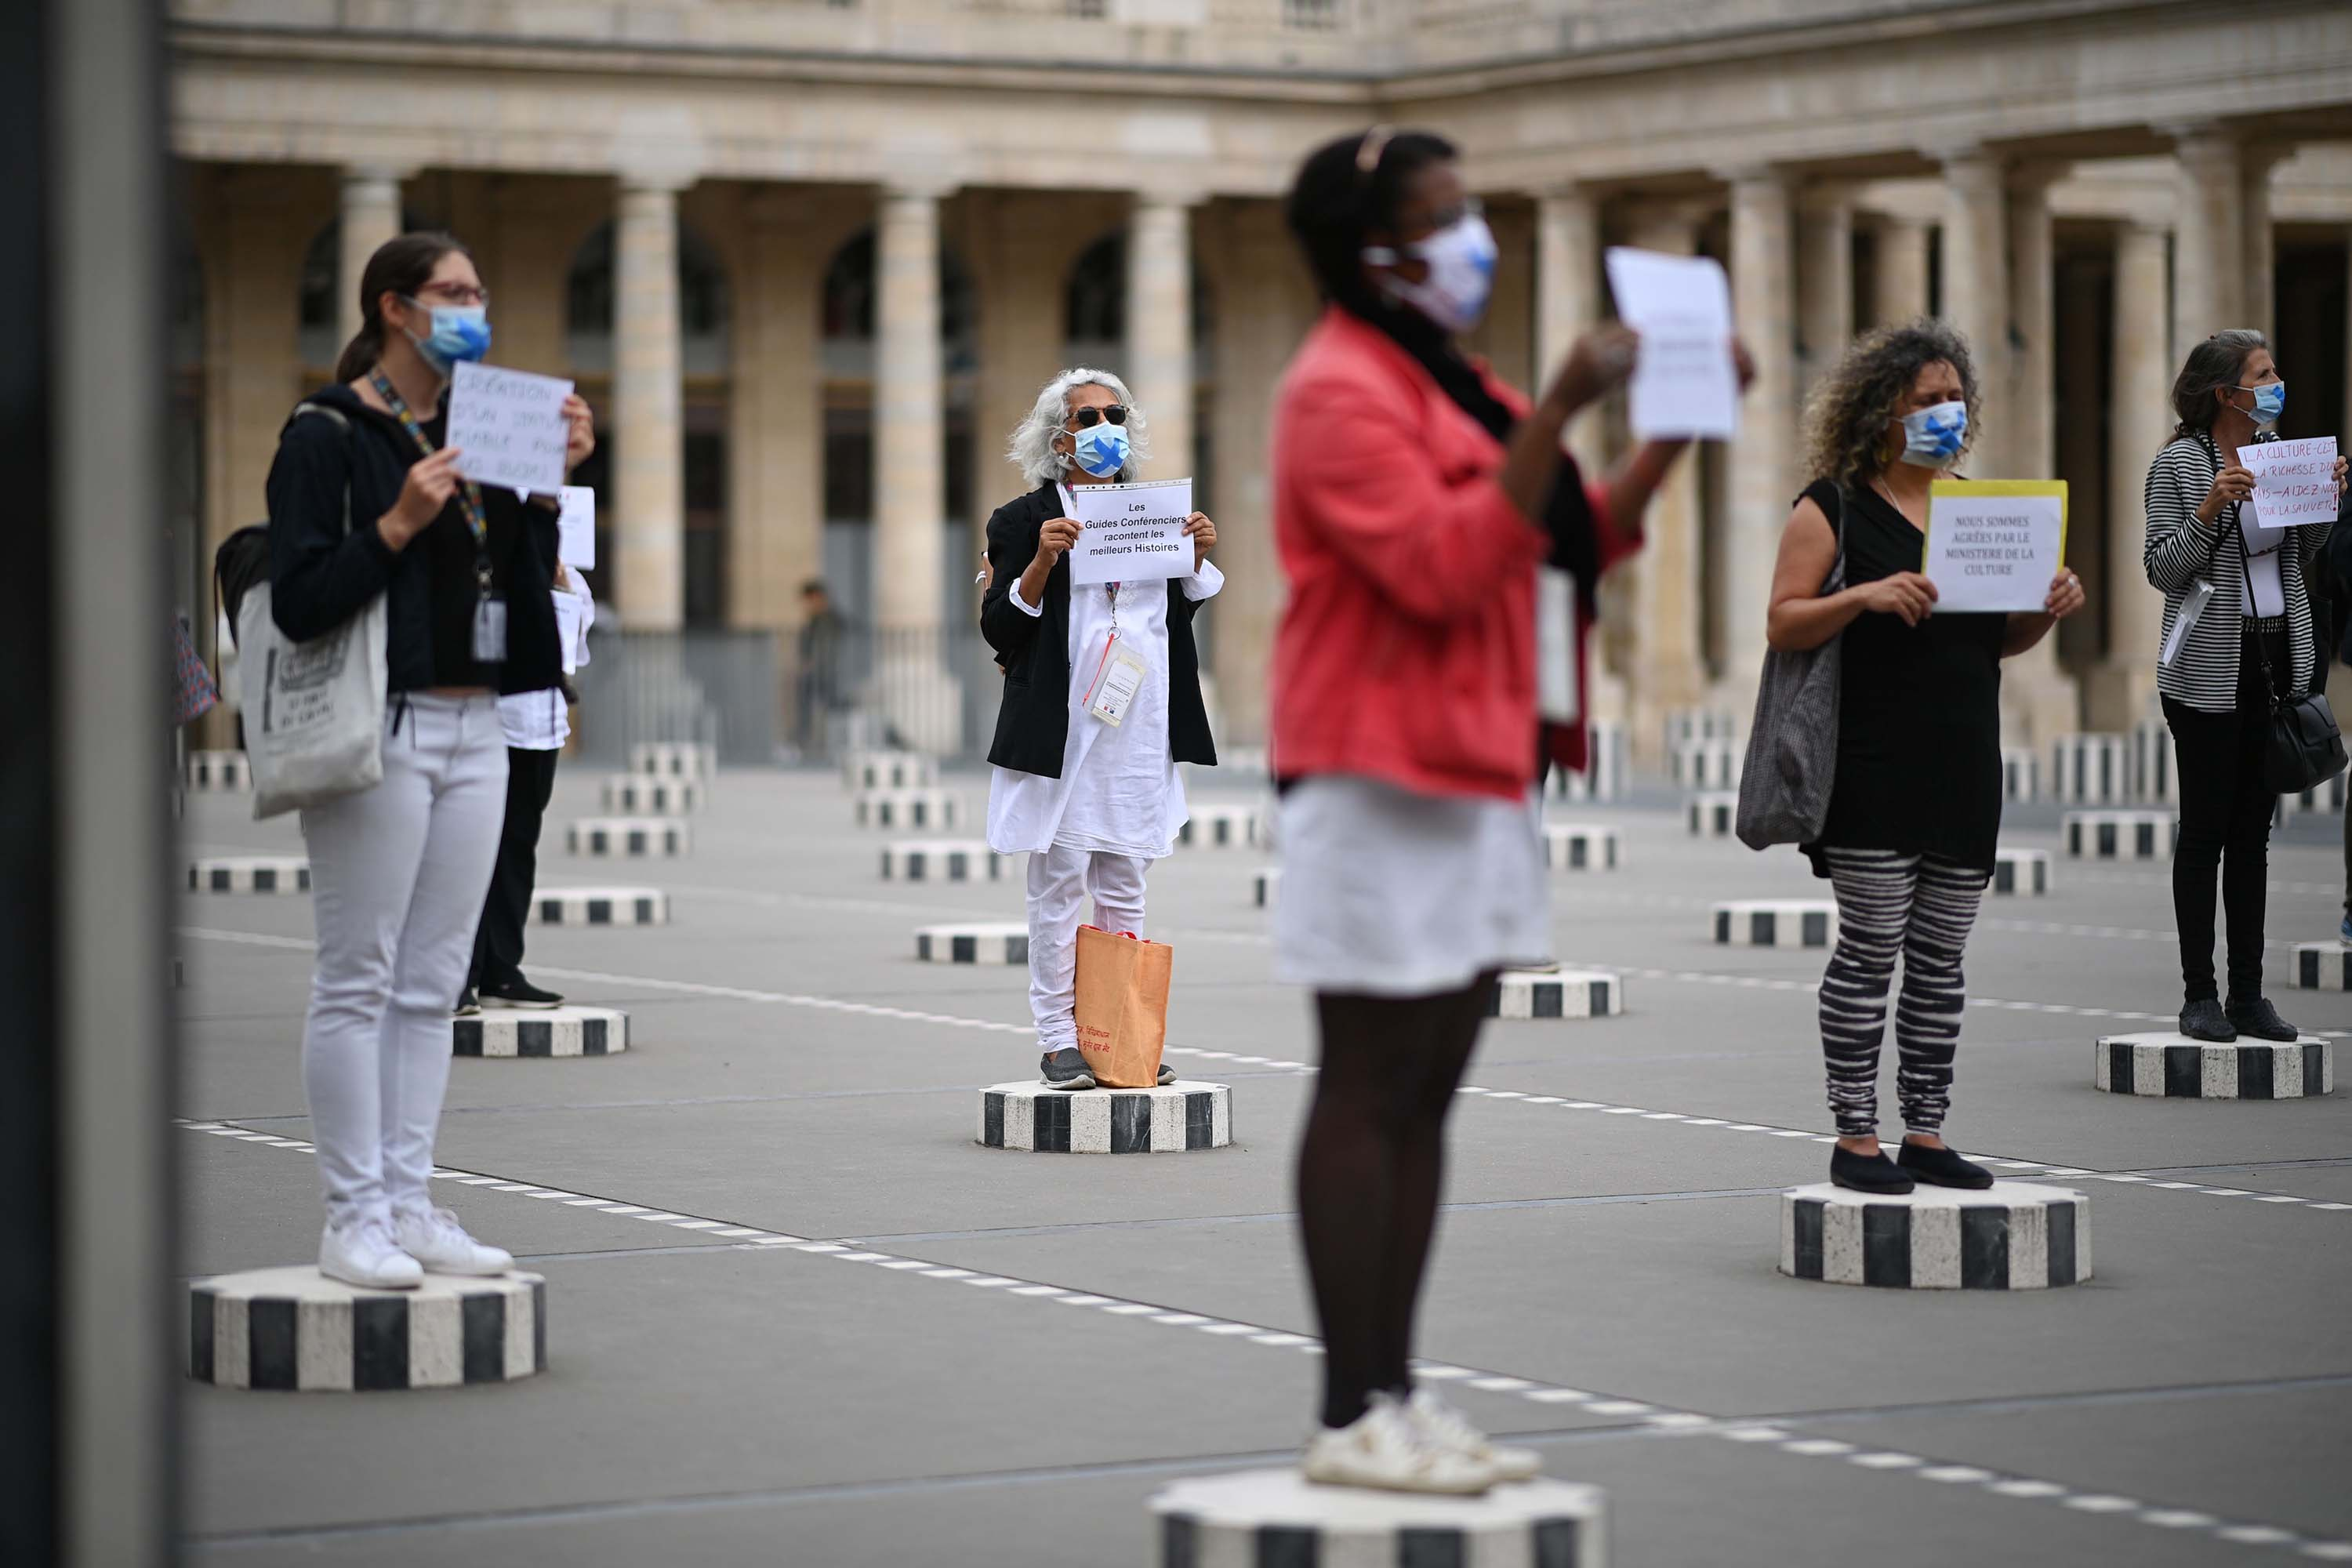 Tour guides protest working conditions due to the novel coronavirus disease outbreak, as they stand on columns of an art installation by French artist Daniel Buren, at the Palais Royal gardens in Paris, on July 16.